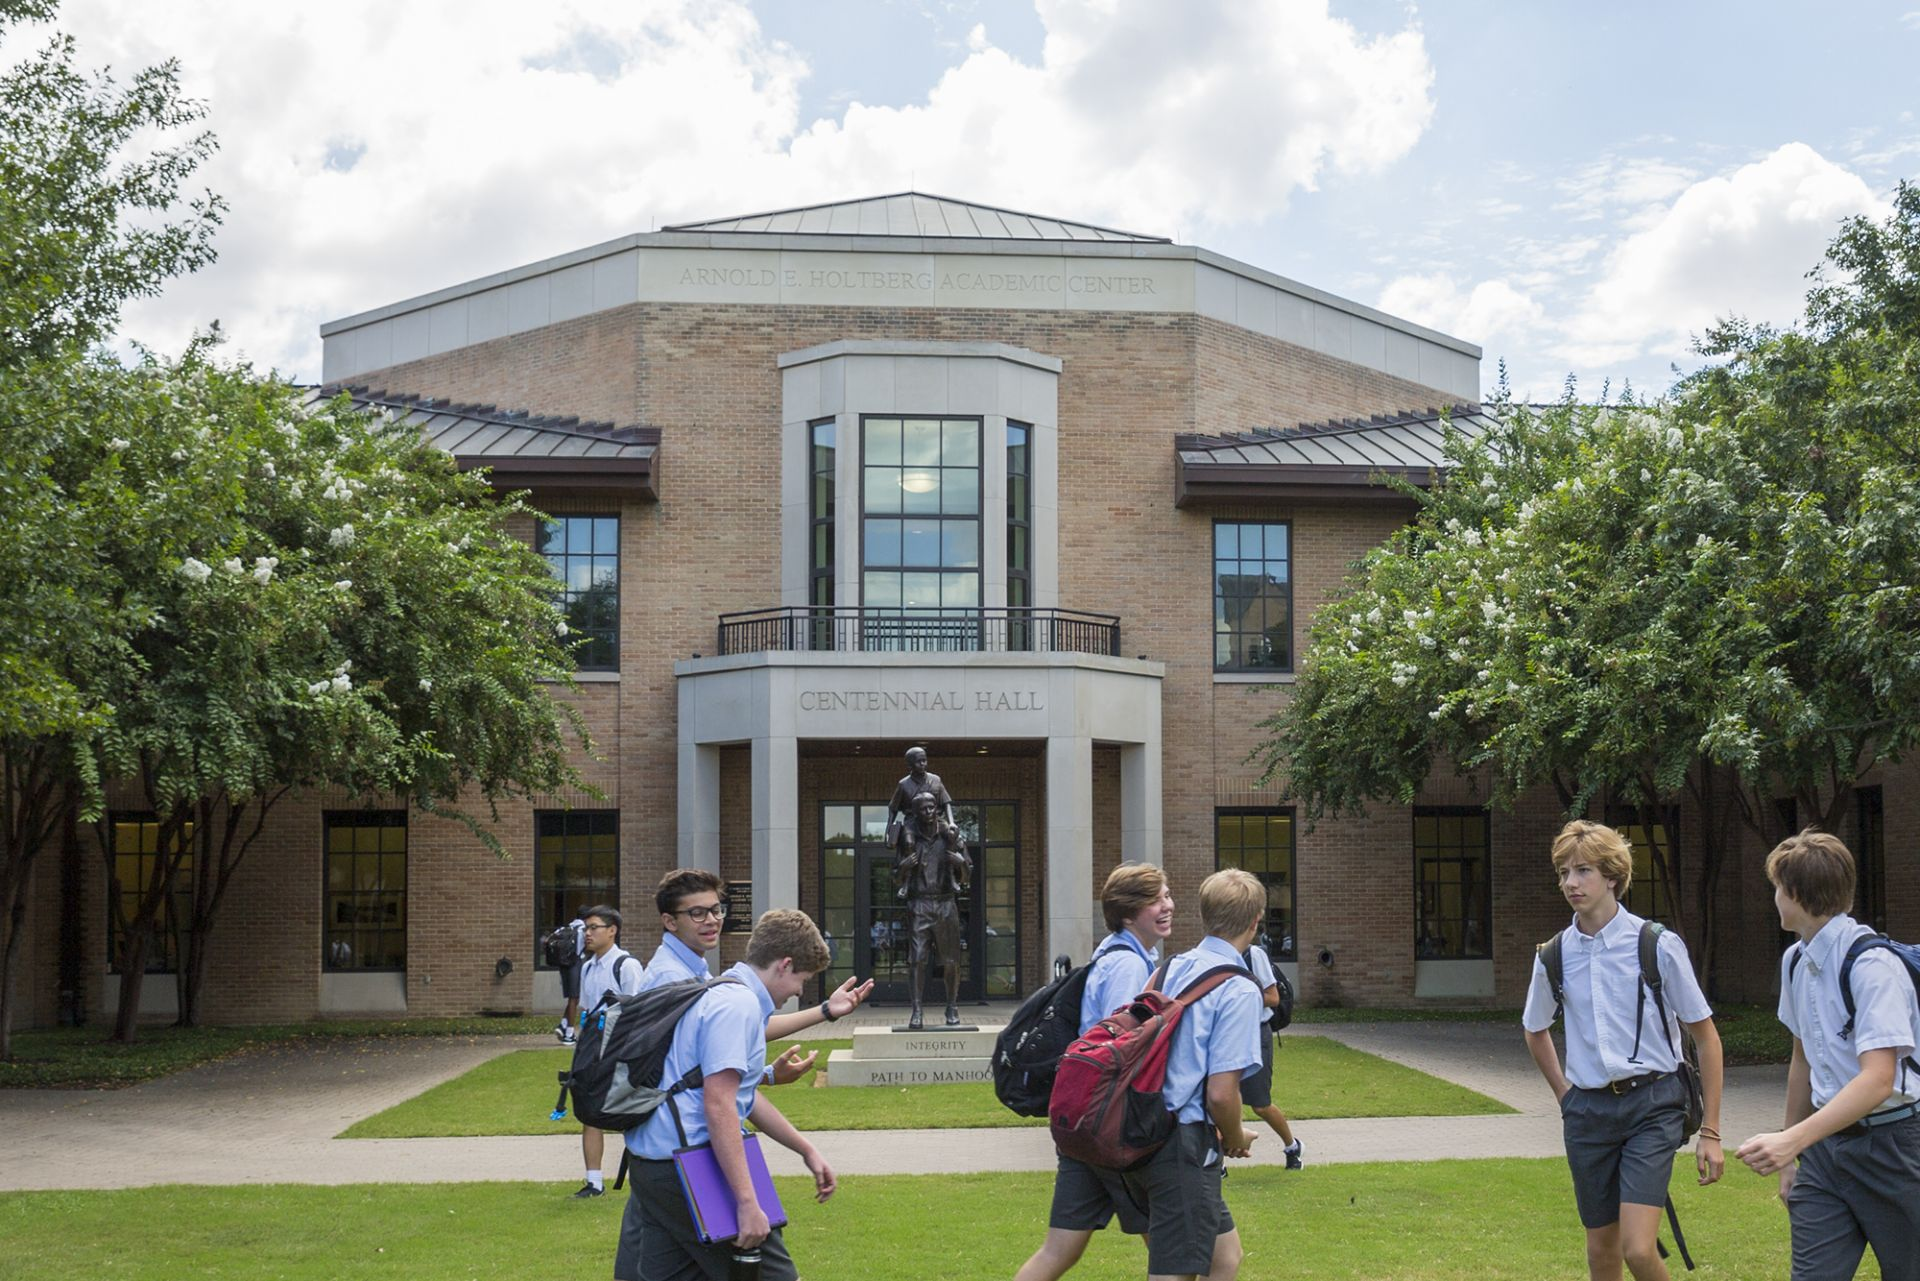 Centennial Hall is the primary academic and administrative building on campus. Housing the Upper and Middle School, the Headmaster's Office, a student lounge, and classrooms, Centennial is the central hub of campus life. In 2018, the building as rededicated at the Arnold E. Holtberg Academic Center in honor of St. Mark's longest-serving headmaster.